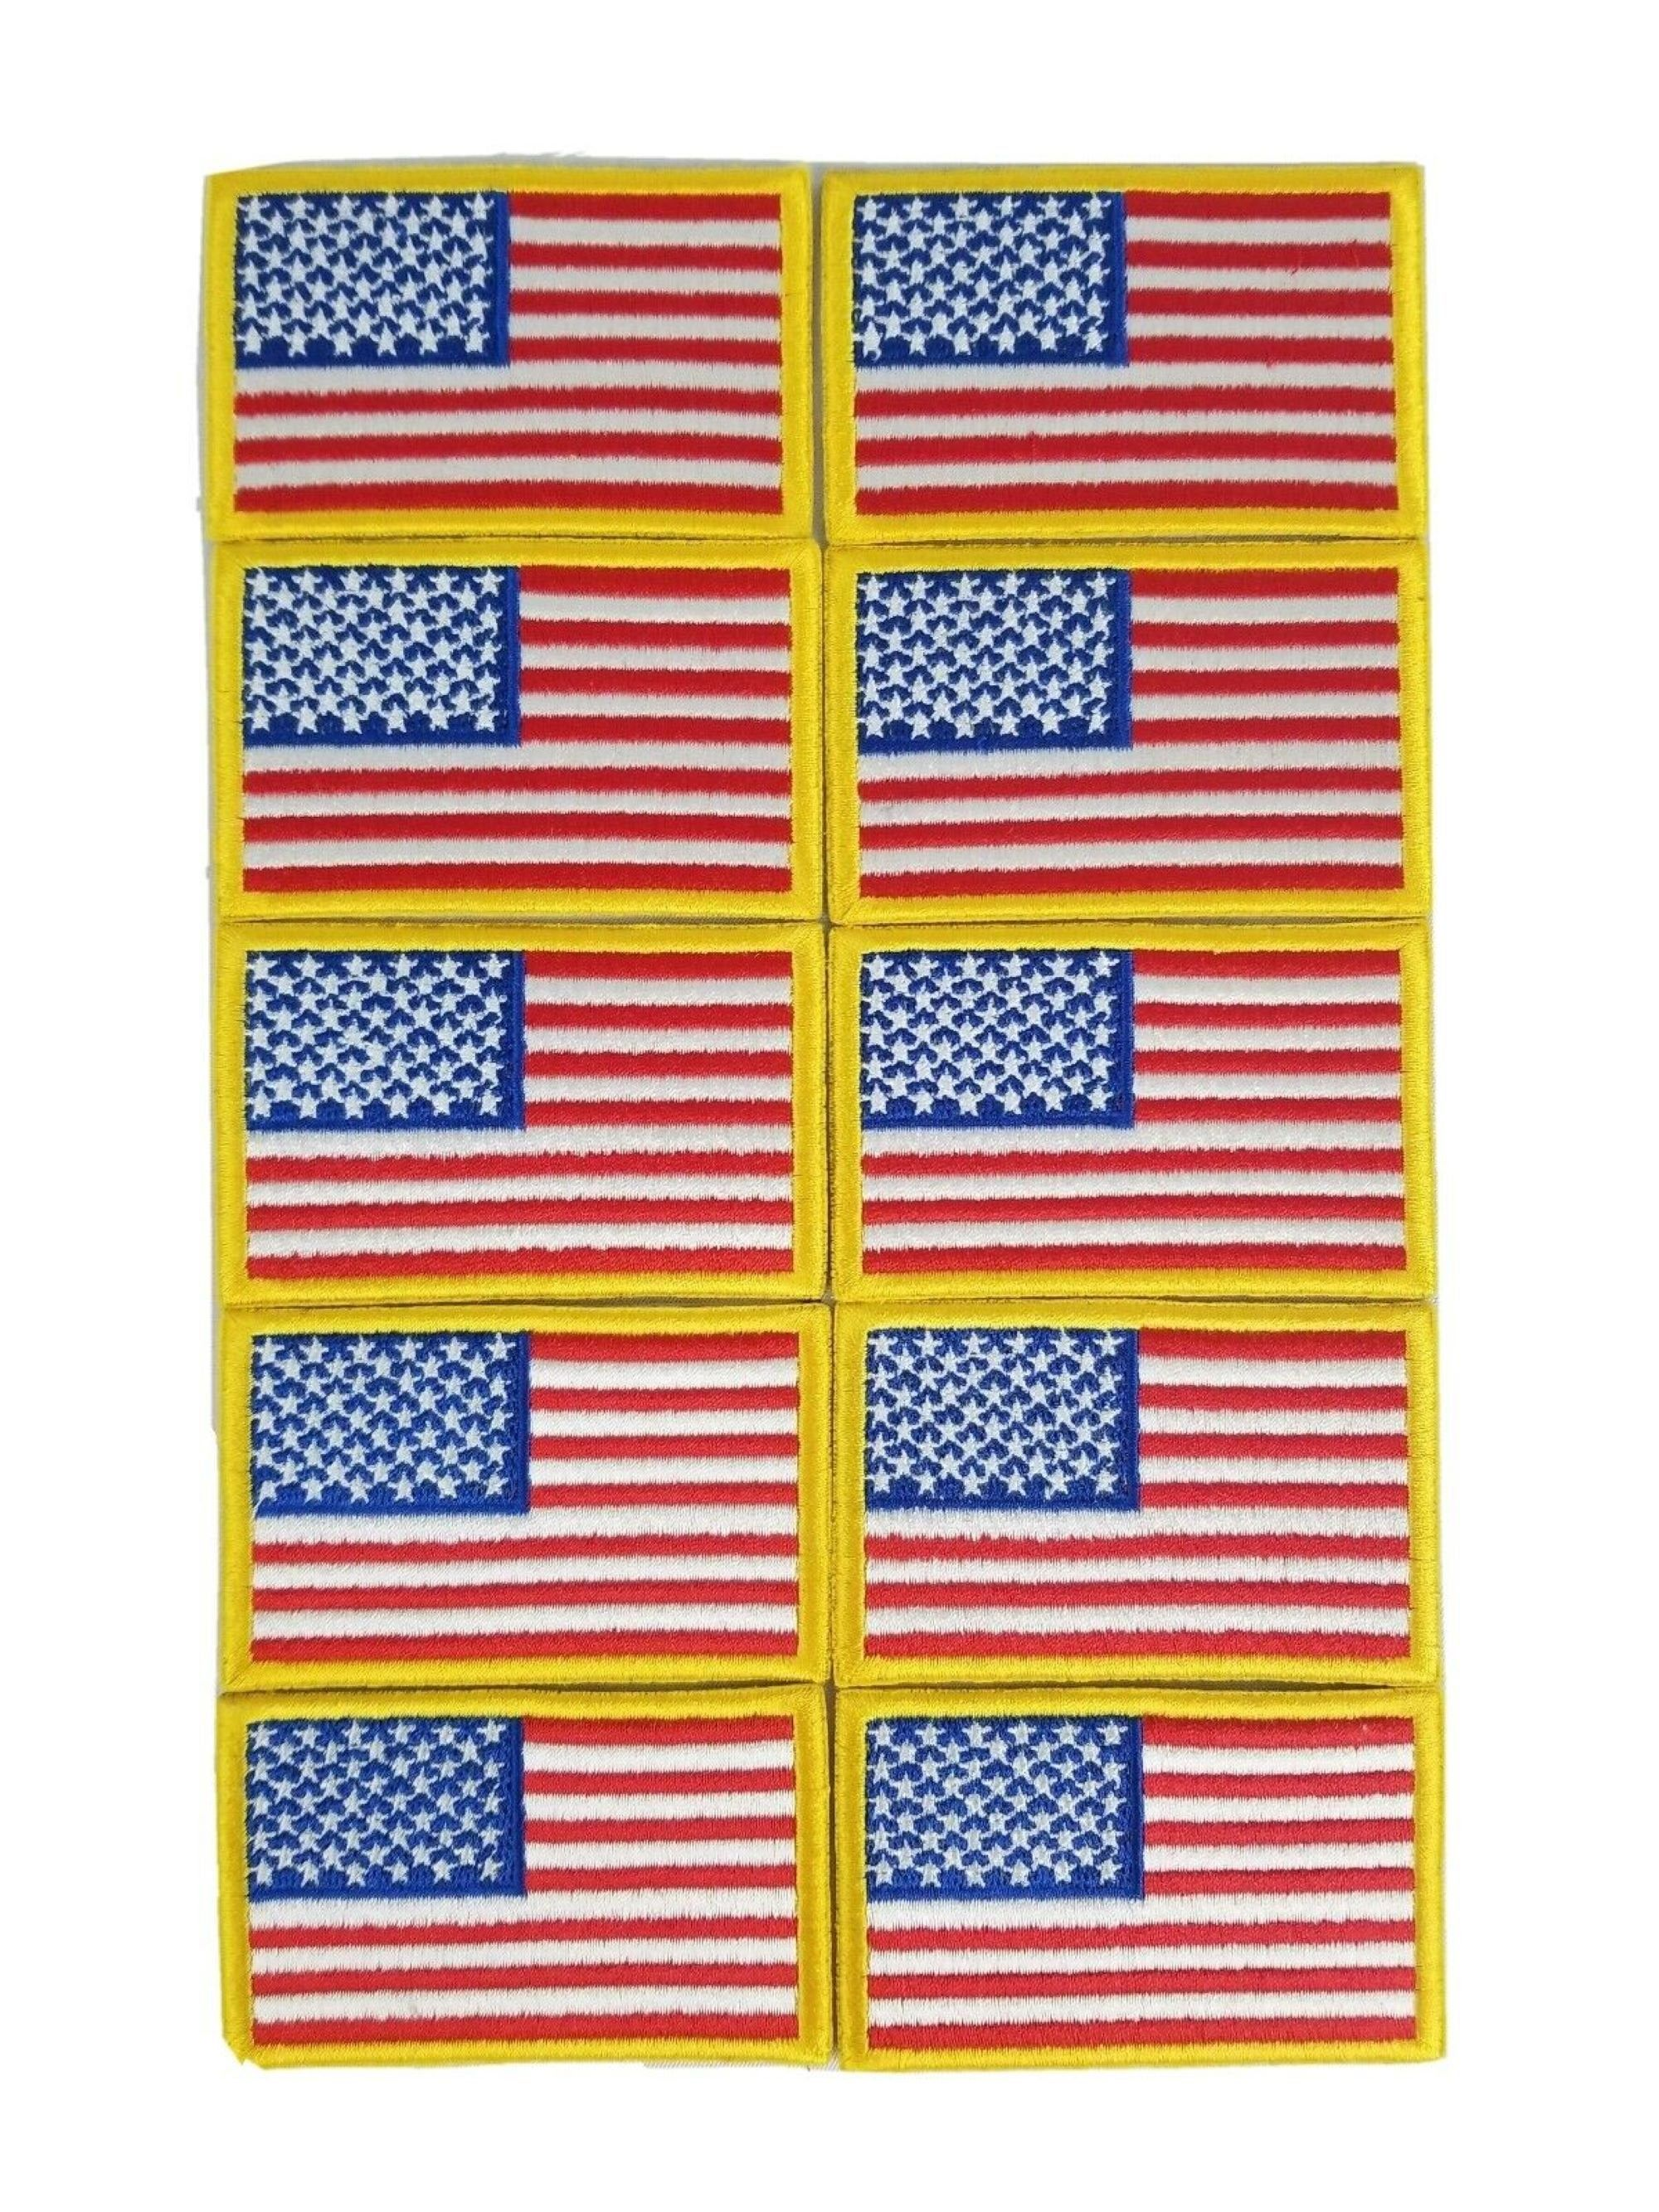 American Flag Patch United States Of America Usa Etsy In 2020 American Flag Patch Flag Patches American Flag